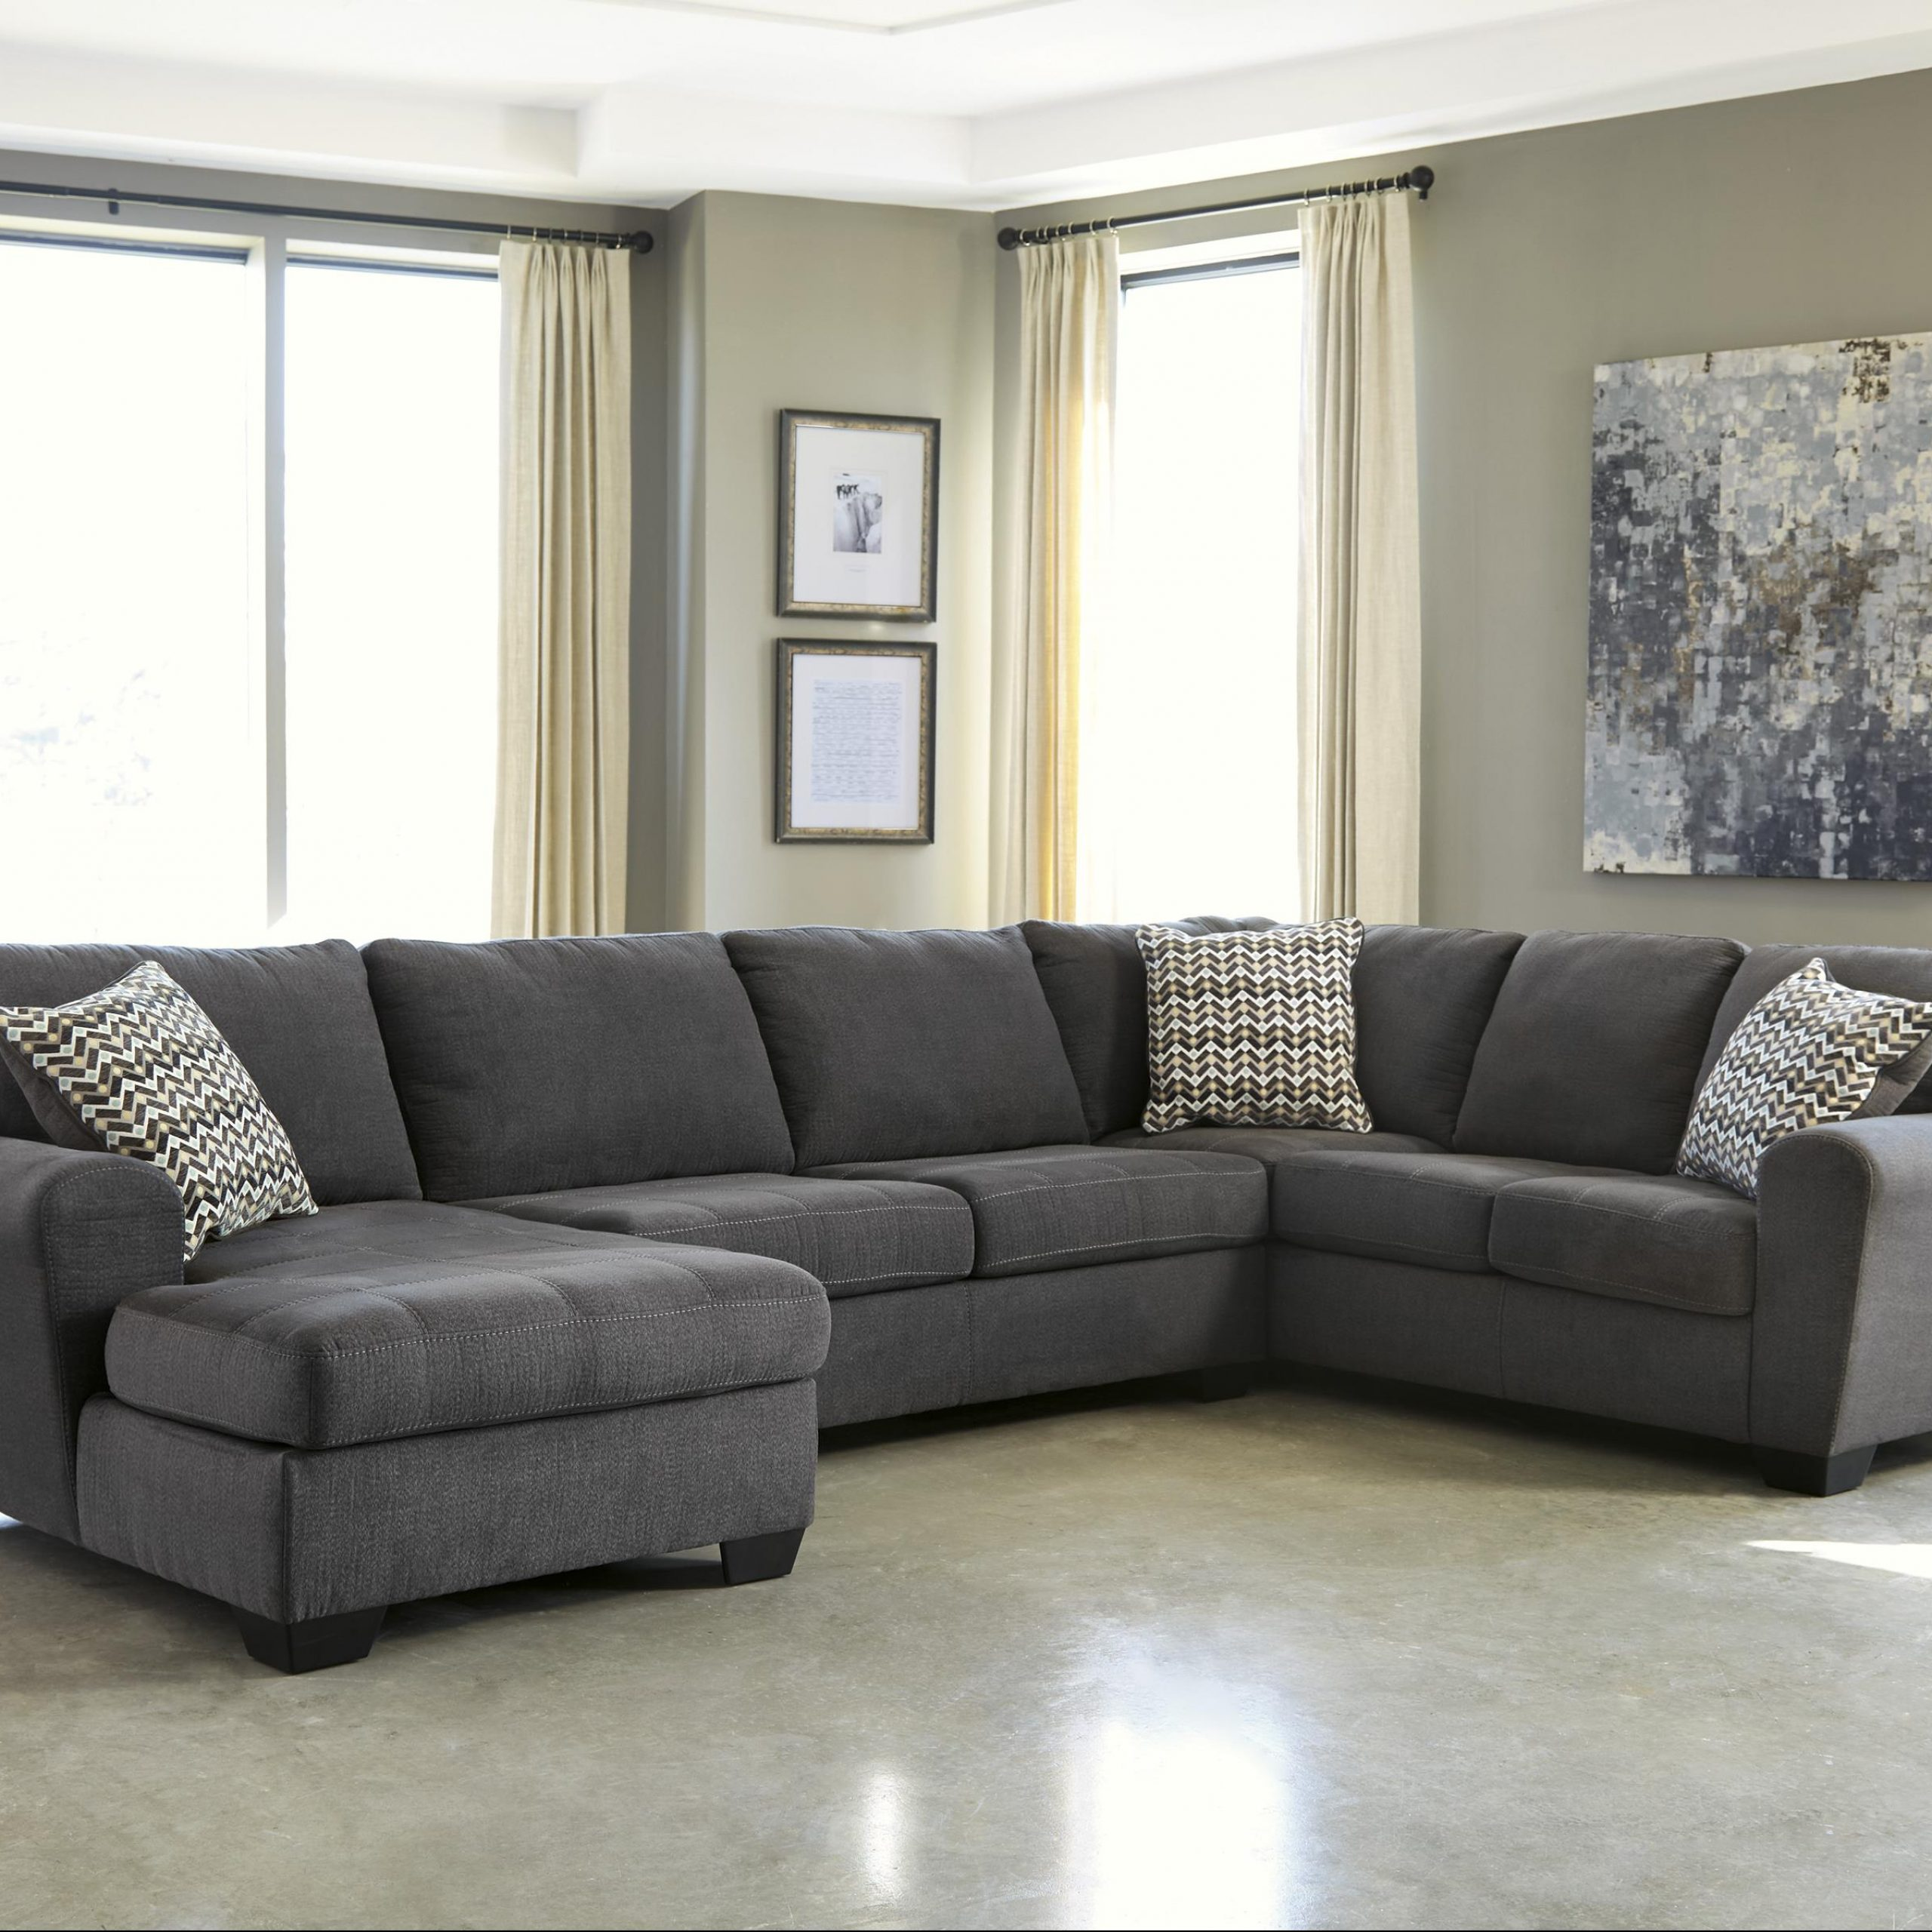 Contemporary 3 Piece Sectional With Left Chaise Throughout 4Pc Crowningshield Contemporary Chaise Sectional Sofas (View 12 of 15)